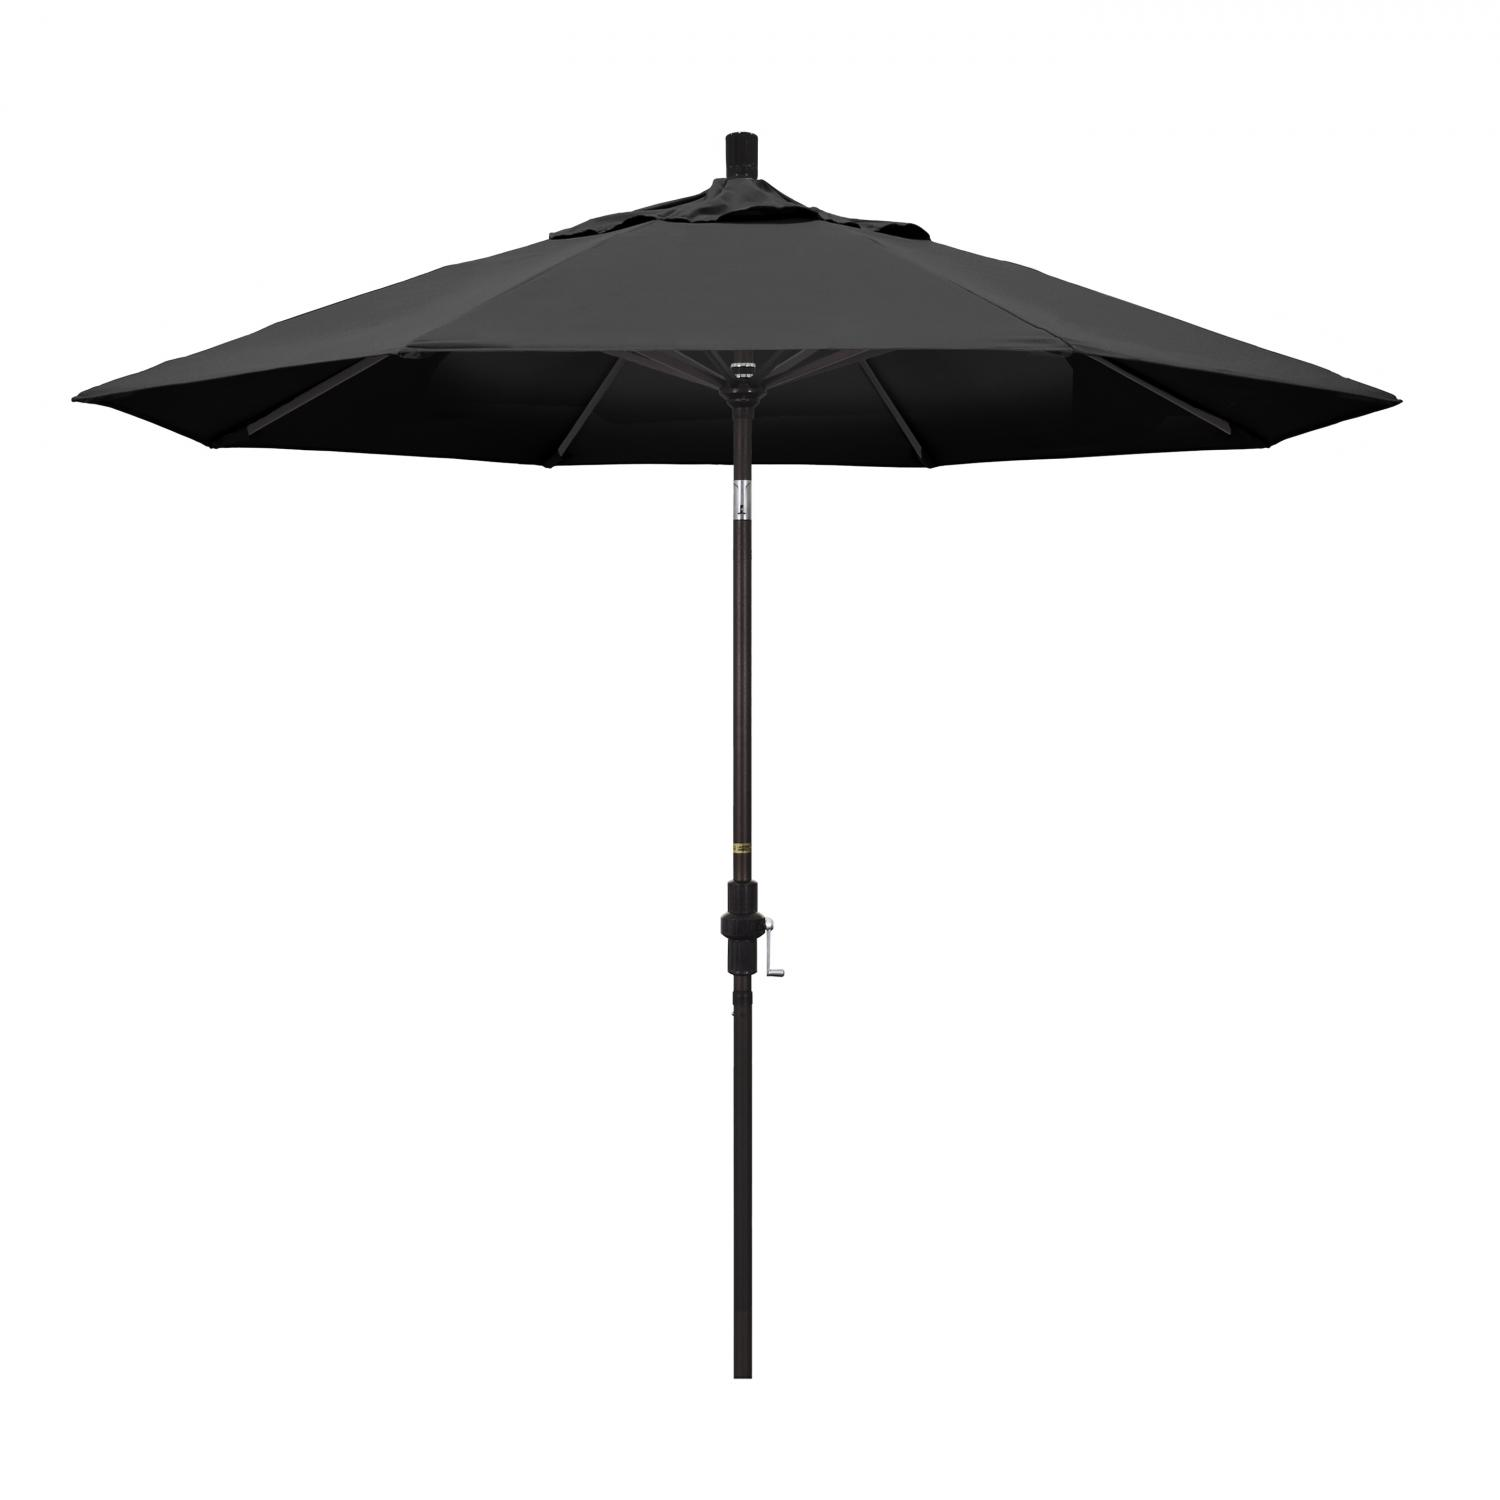 California Umbrella 9 Ft. Octagonal Aluminum Collar Tilt Patio Umbrella W/ Crank Lift & Aluminum Ribs - Bronze Frame / Olefin Black Canopy